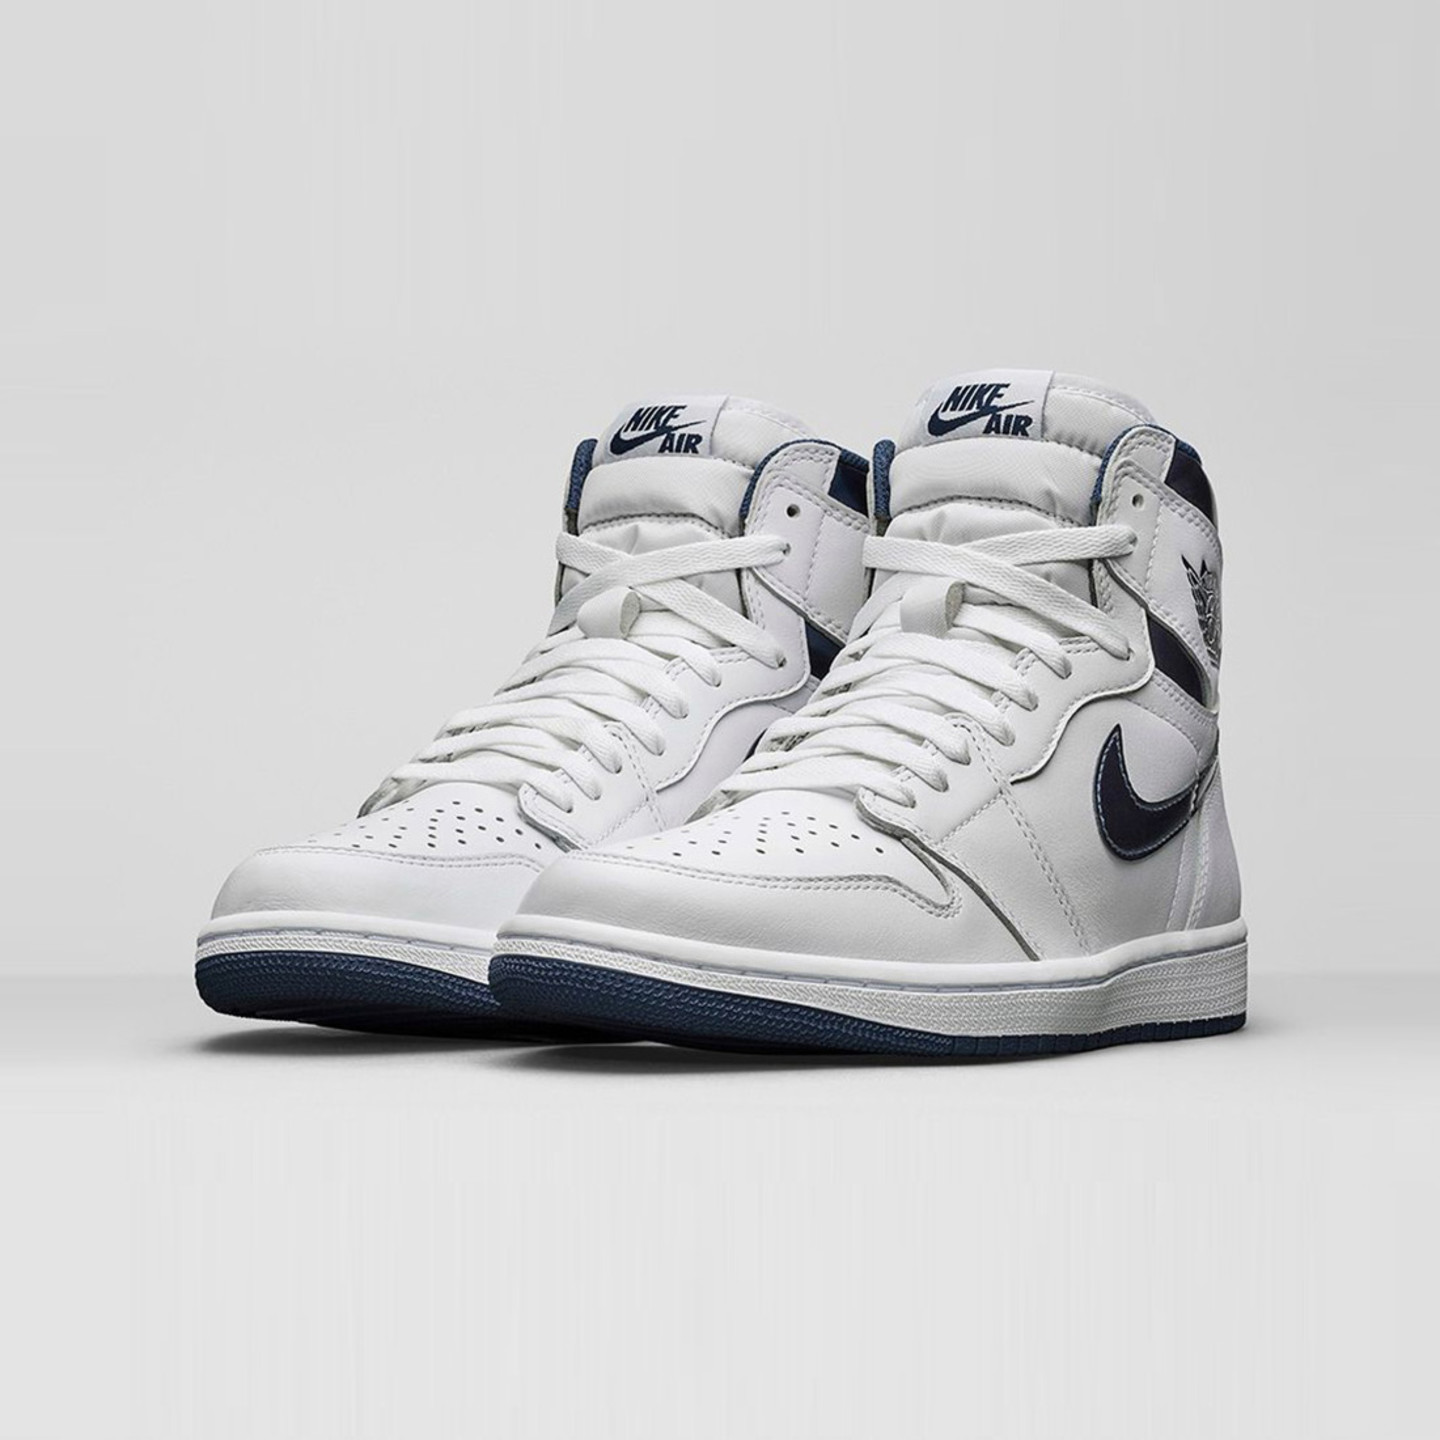 half off 4265f 64f6b Jordan Air Jordan 1 Retro High OG  Metallic Navy  White   Midnight Navy  555088